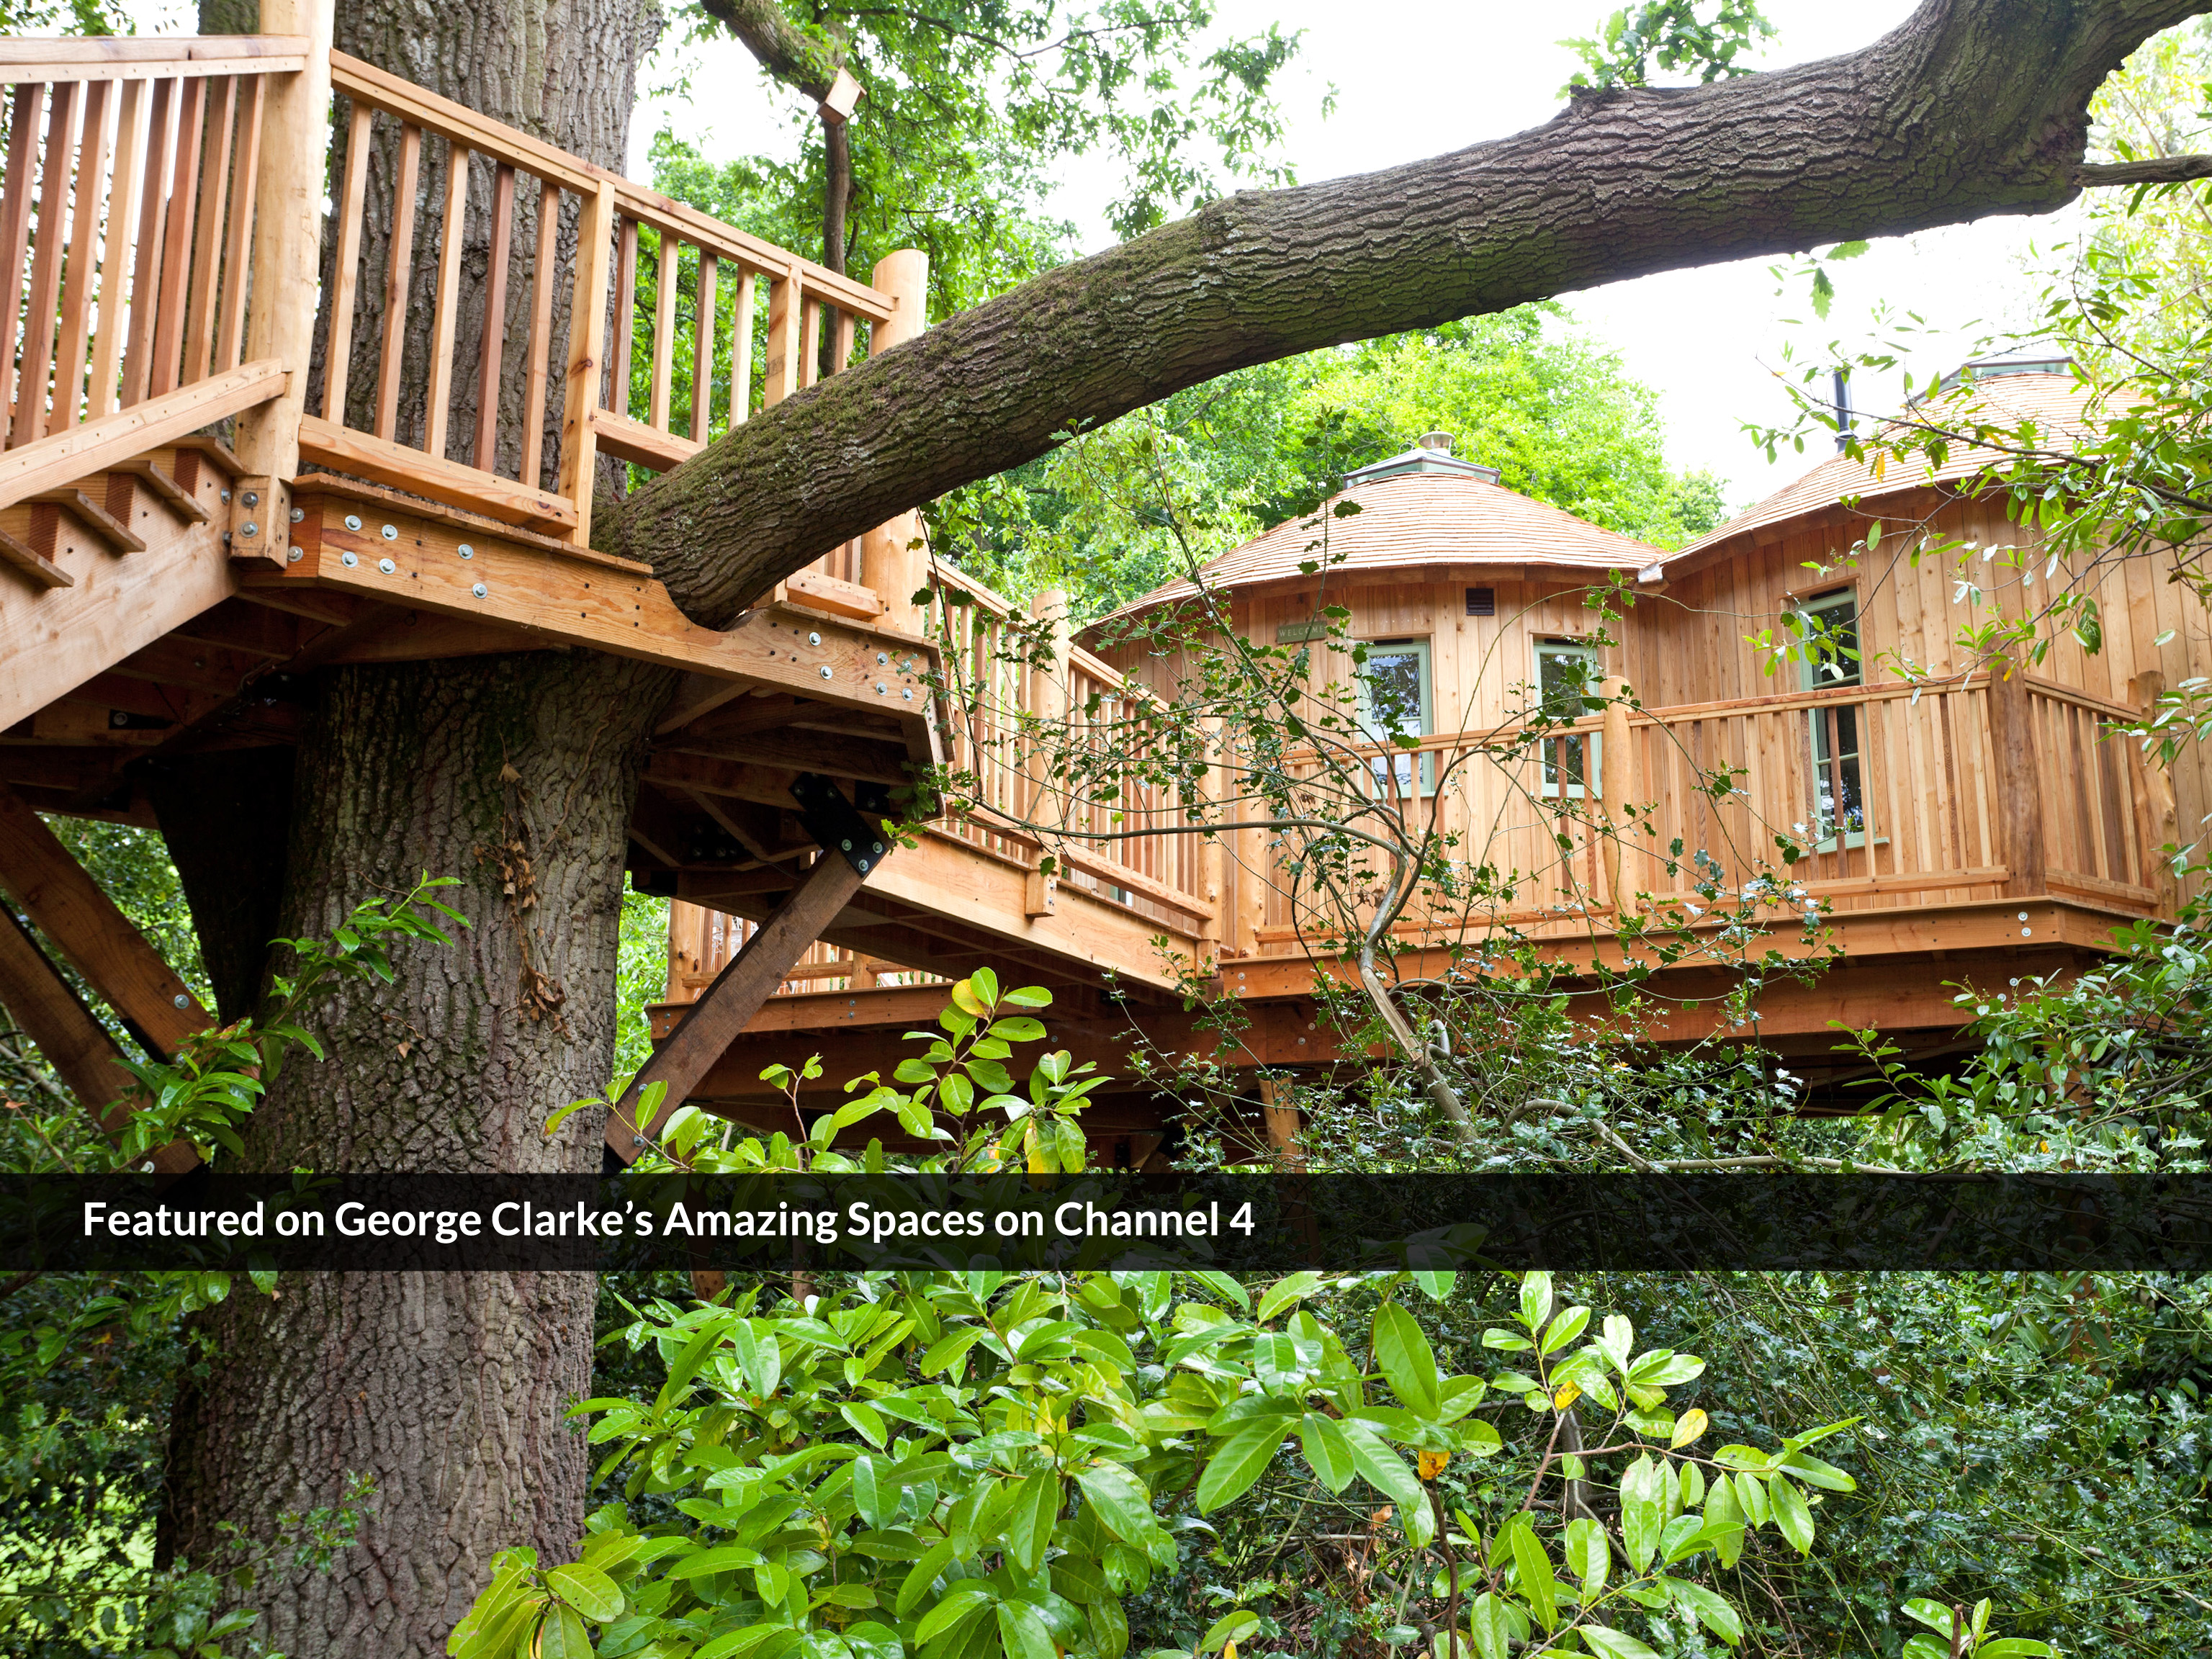 Treehouse Pictures The Treehouse At Harptree Court Canopy Stars